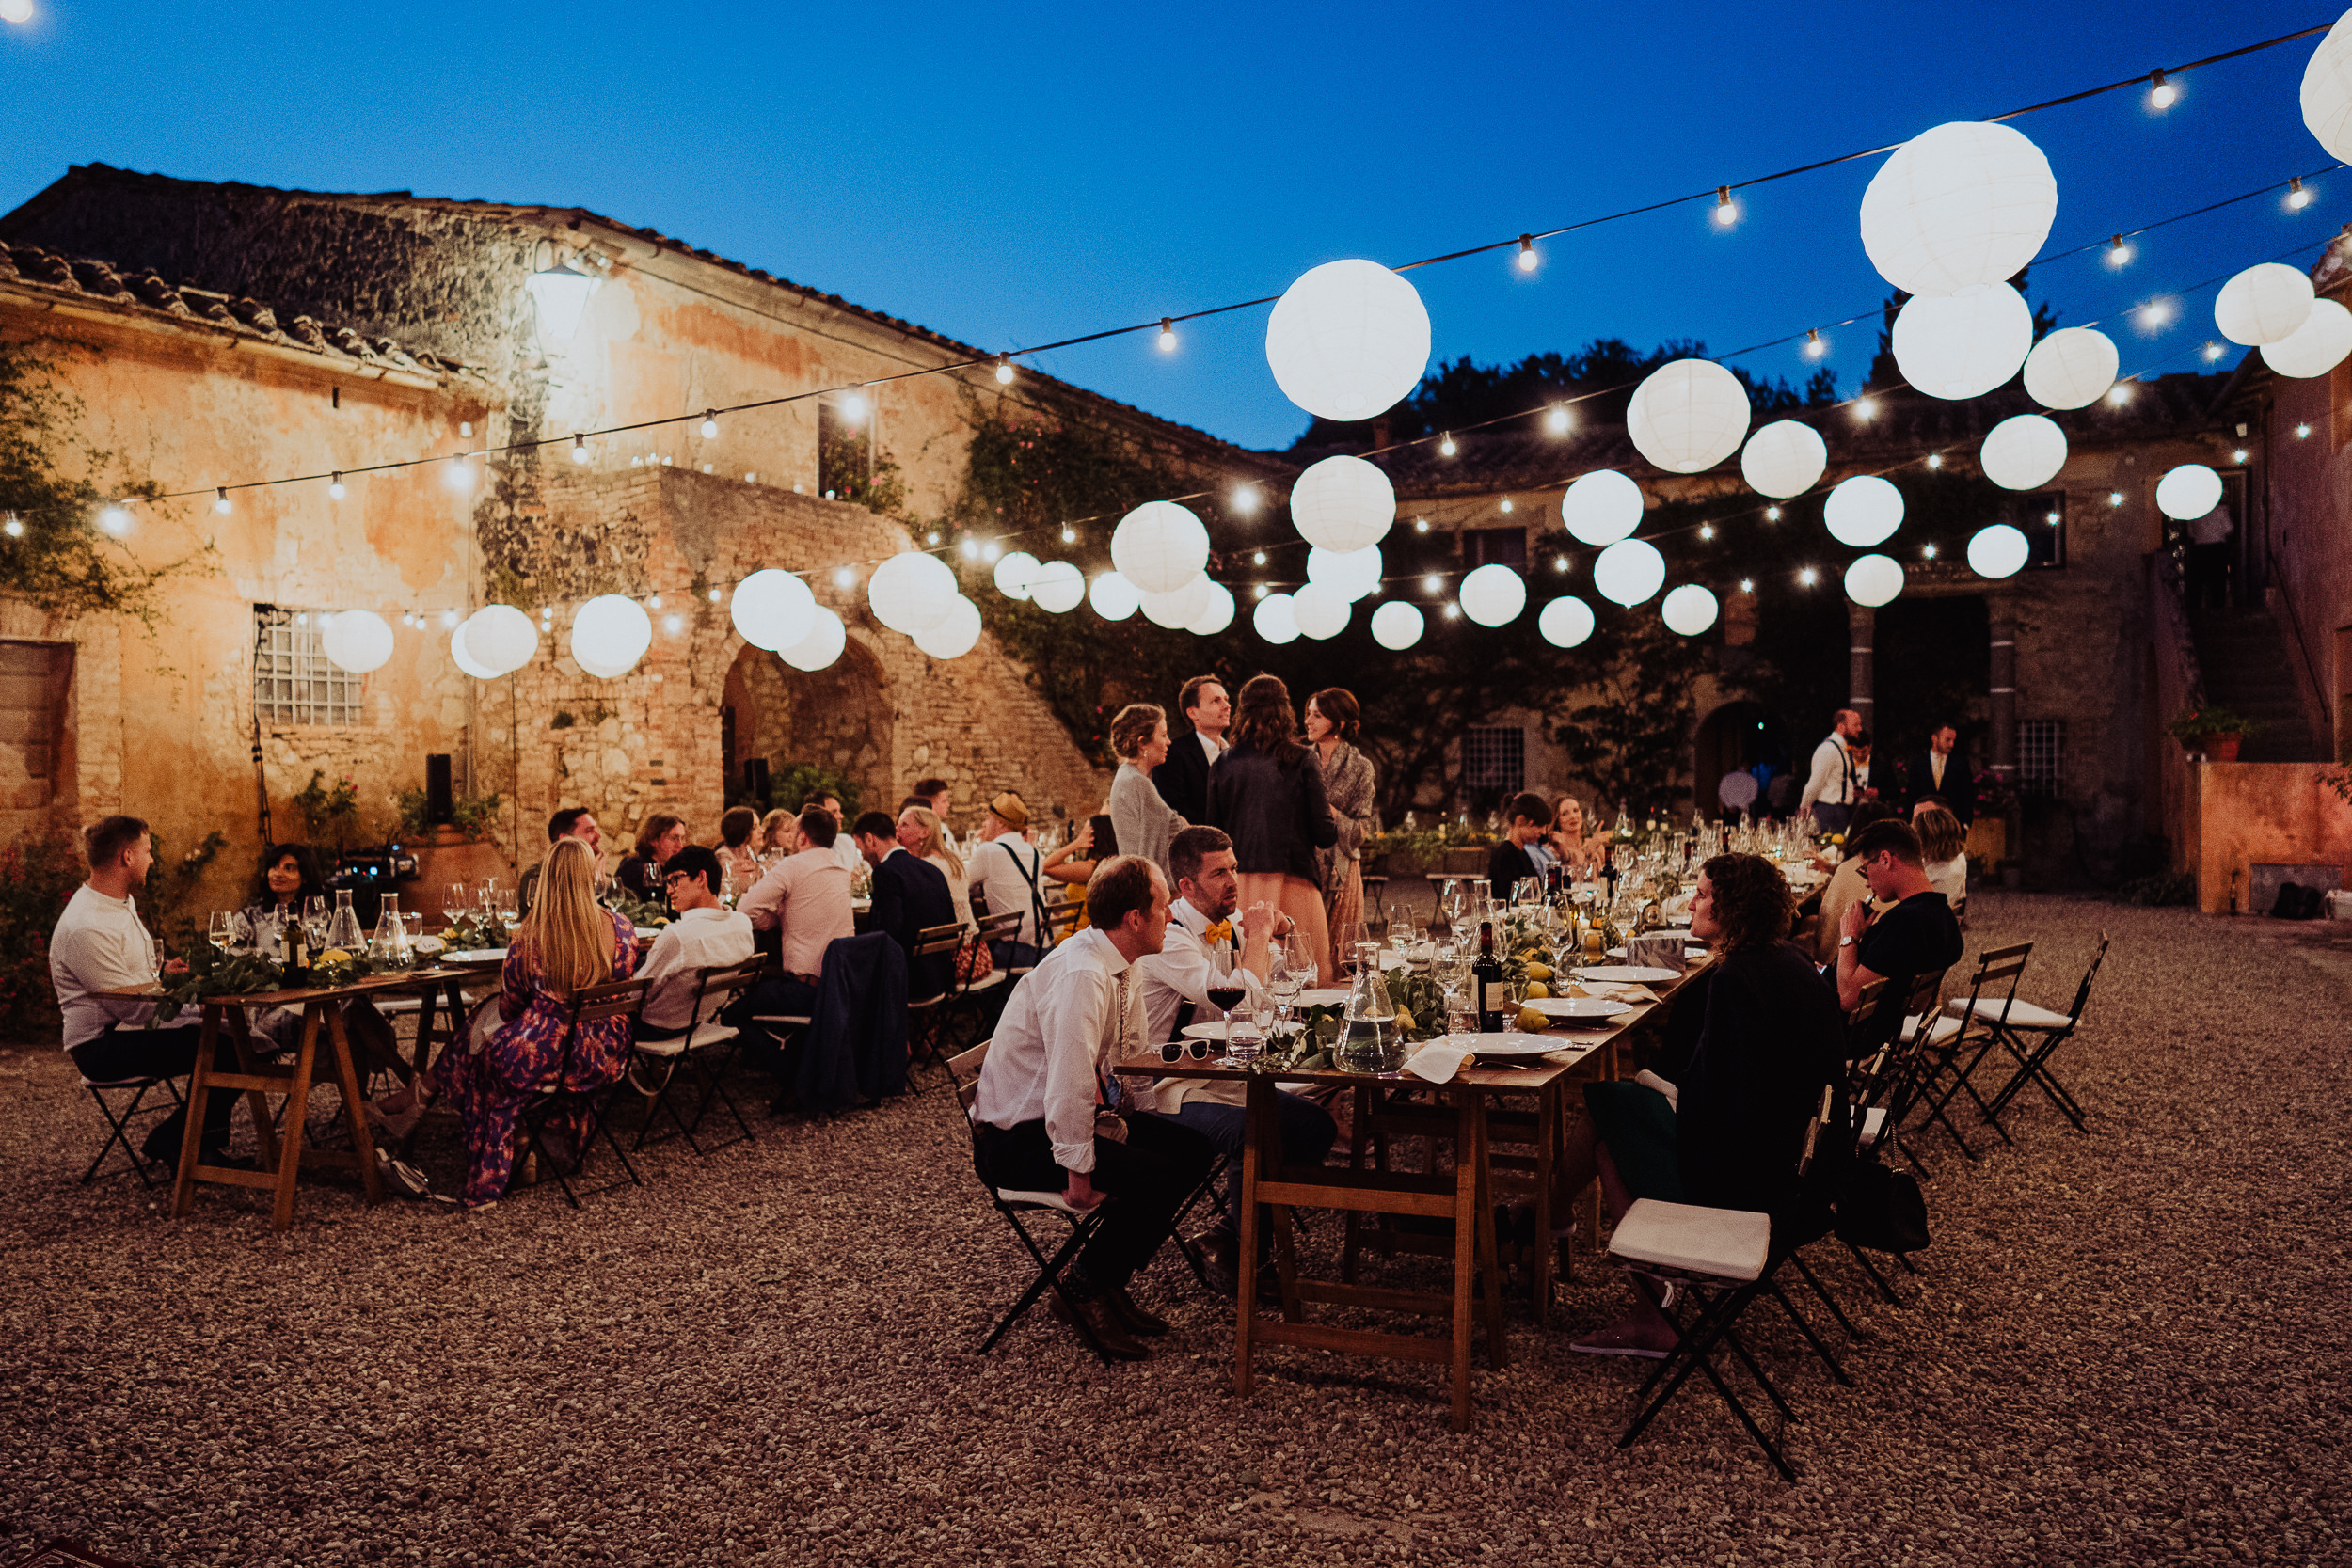 Tuscan Villa Wedding - guests eating outside in the courtyard at Villa Catignano